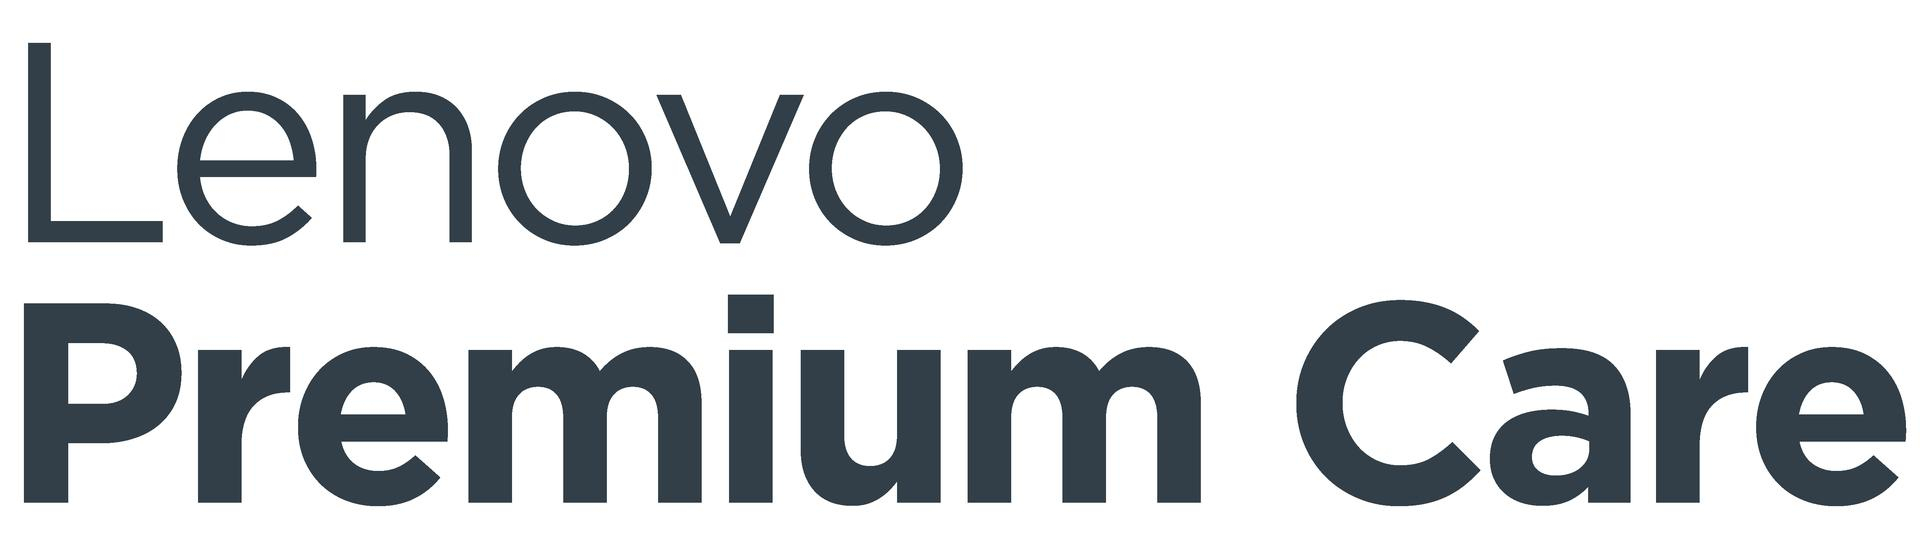 Lenovo 3 Year Premium Care with Onsite Support